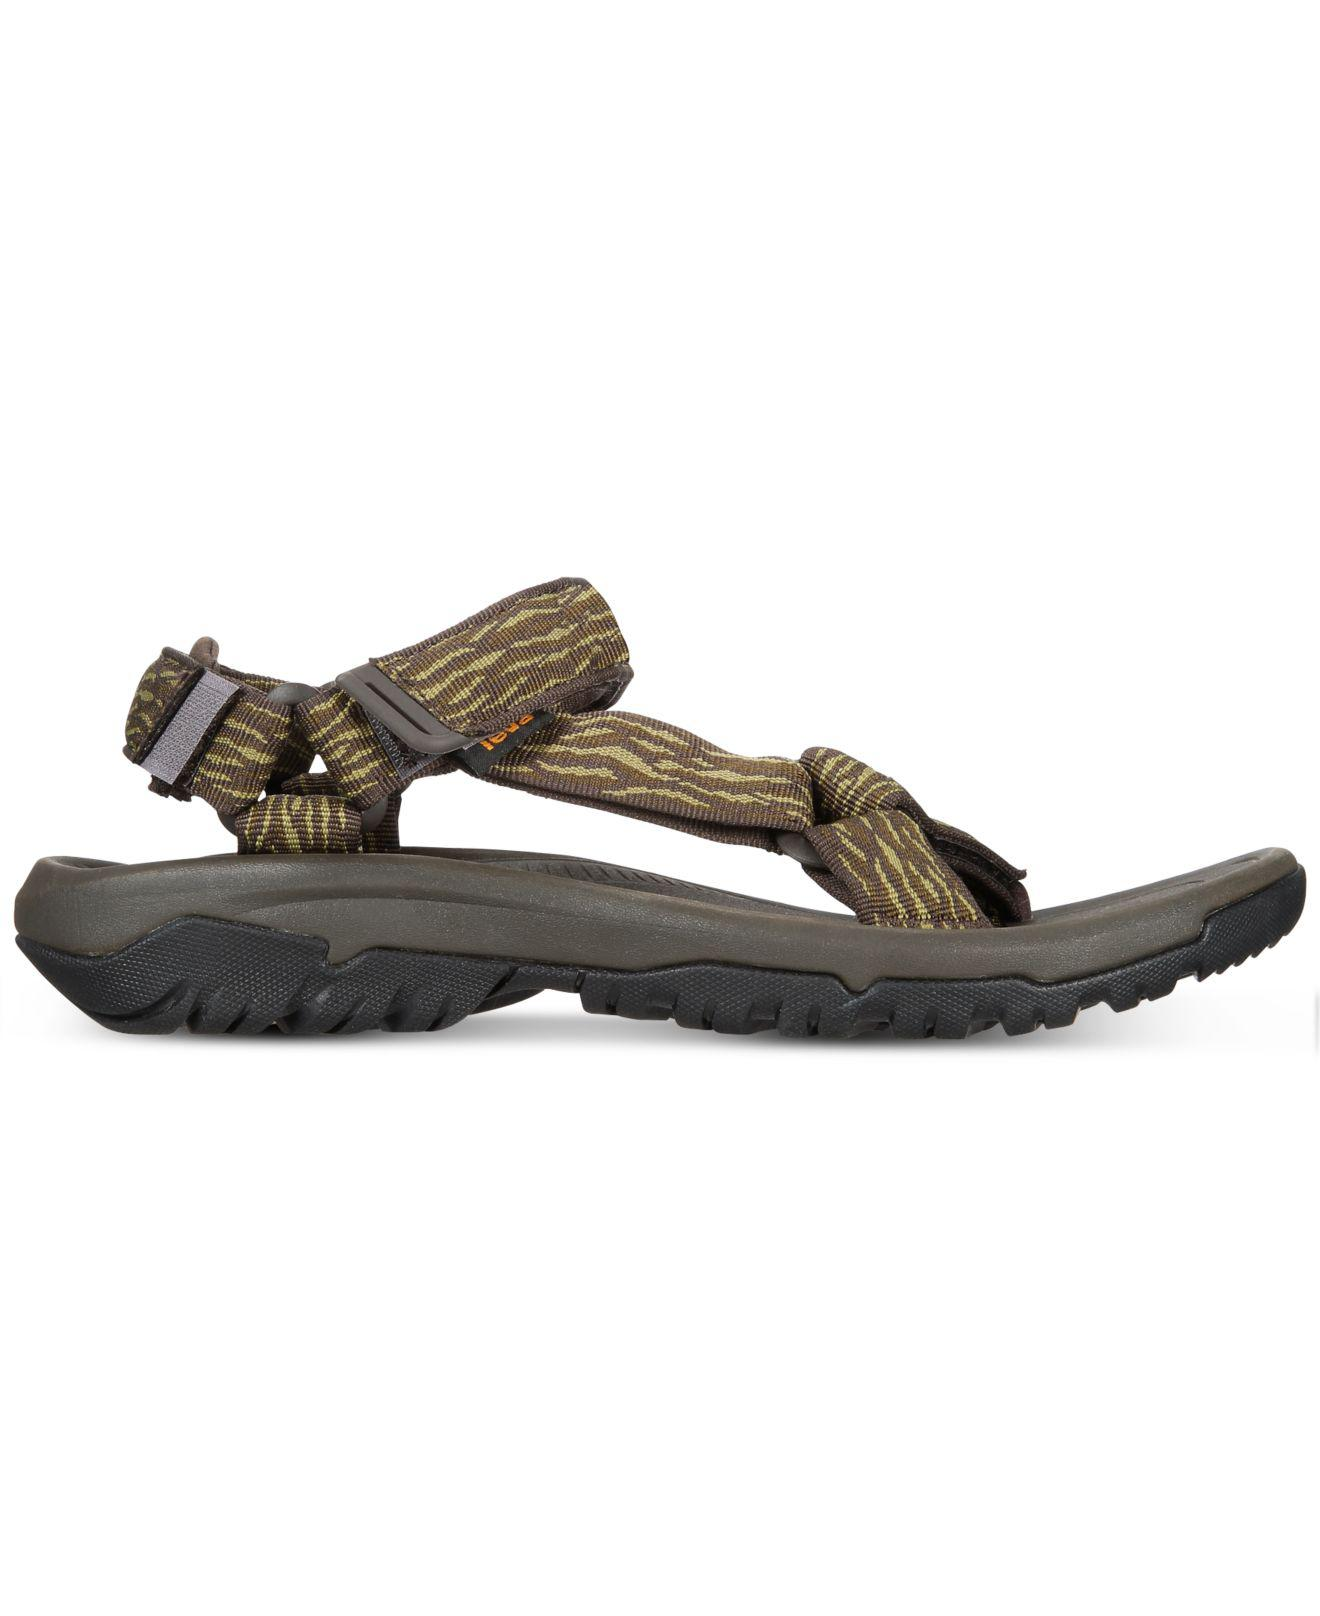 09b577fb4fec6 Lyst - Teva Hurricane Xlt2 Water-resistant Sandals in Black for Men